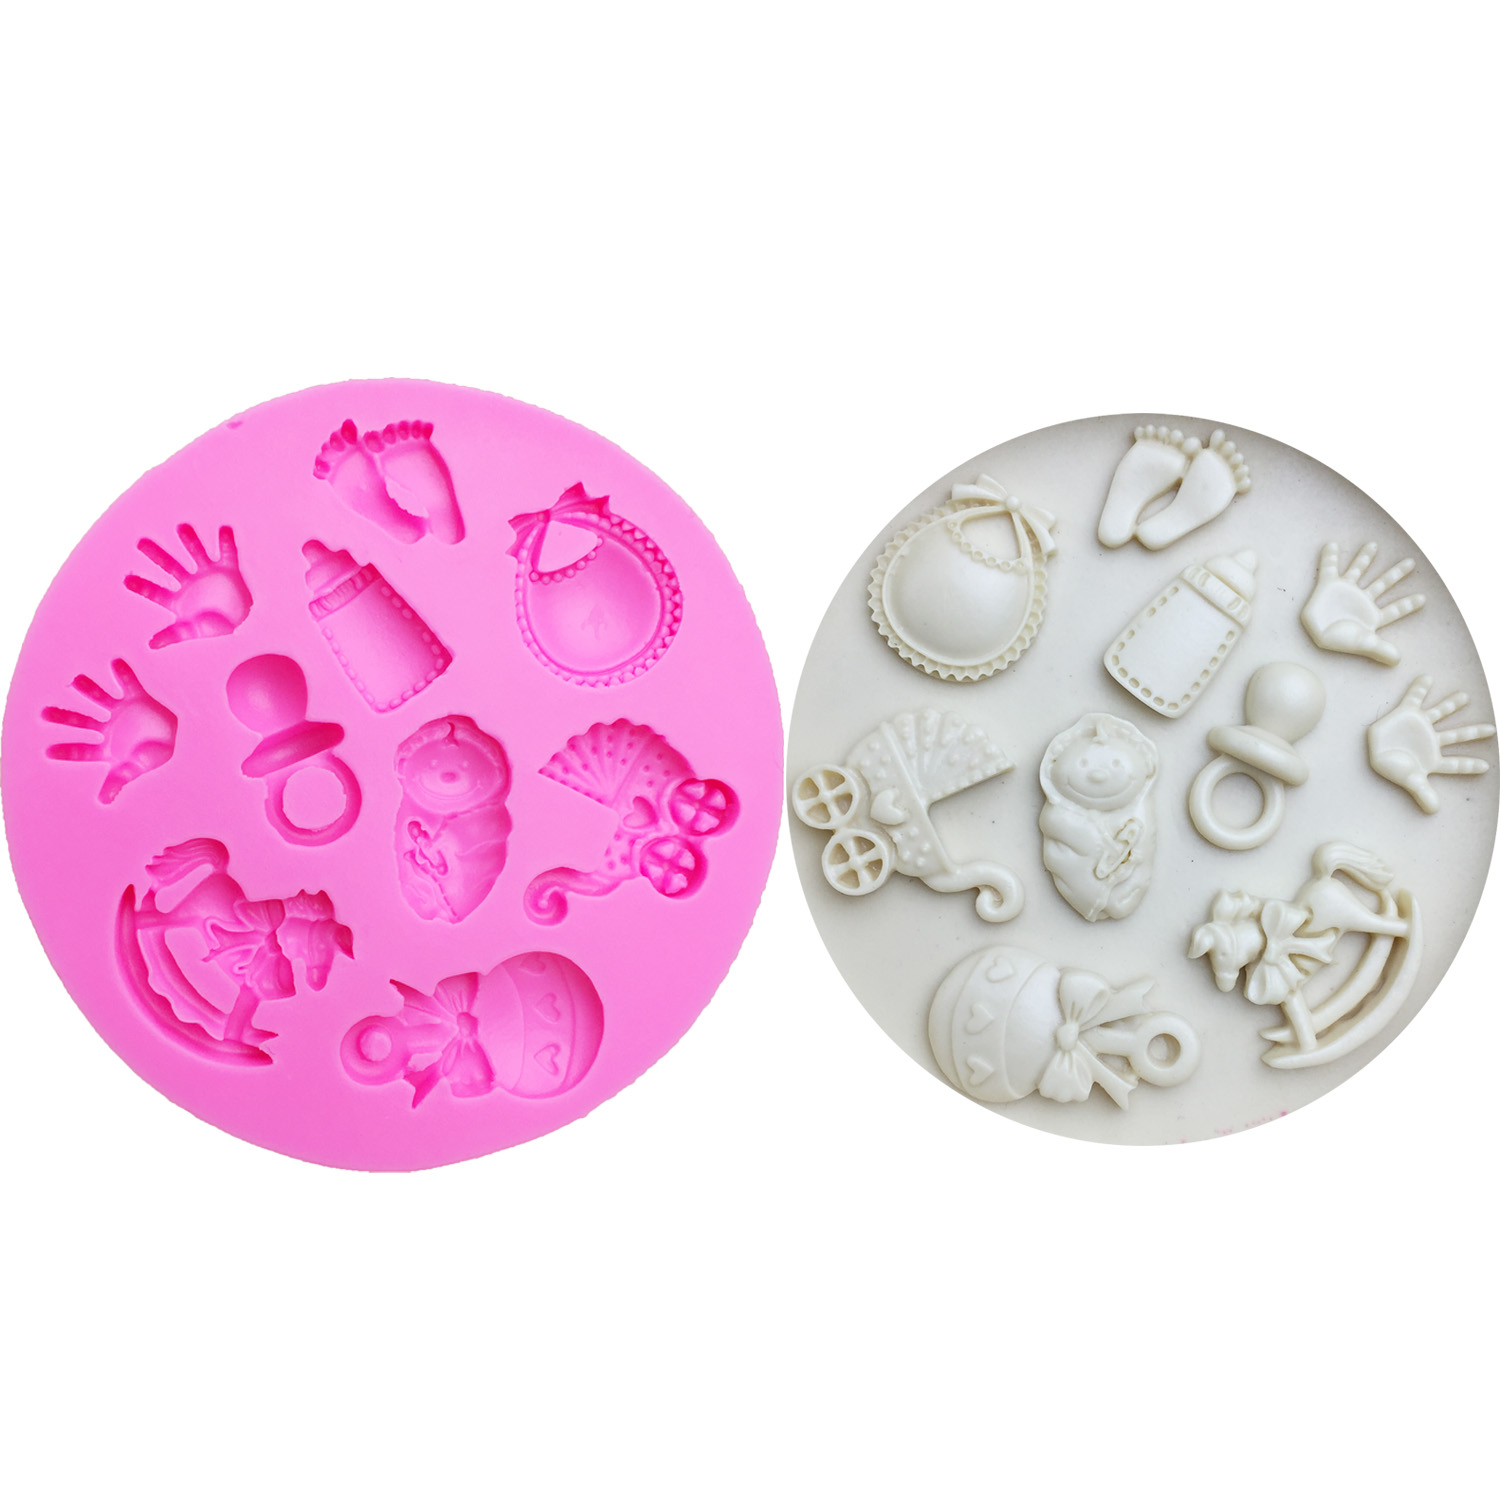 M0300 Baby DIY Hand/ Trojan/Bottle/Foot/carriage Silicone Mold Cake Decoration Tools